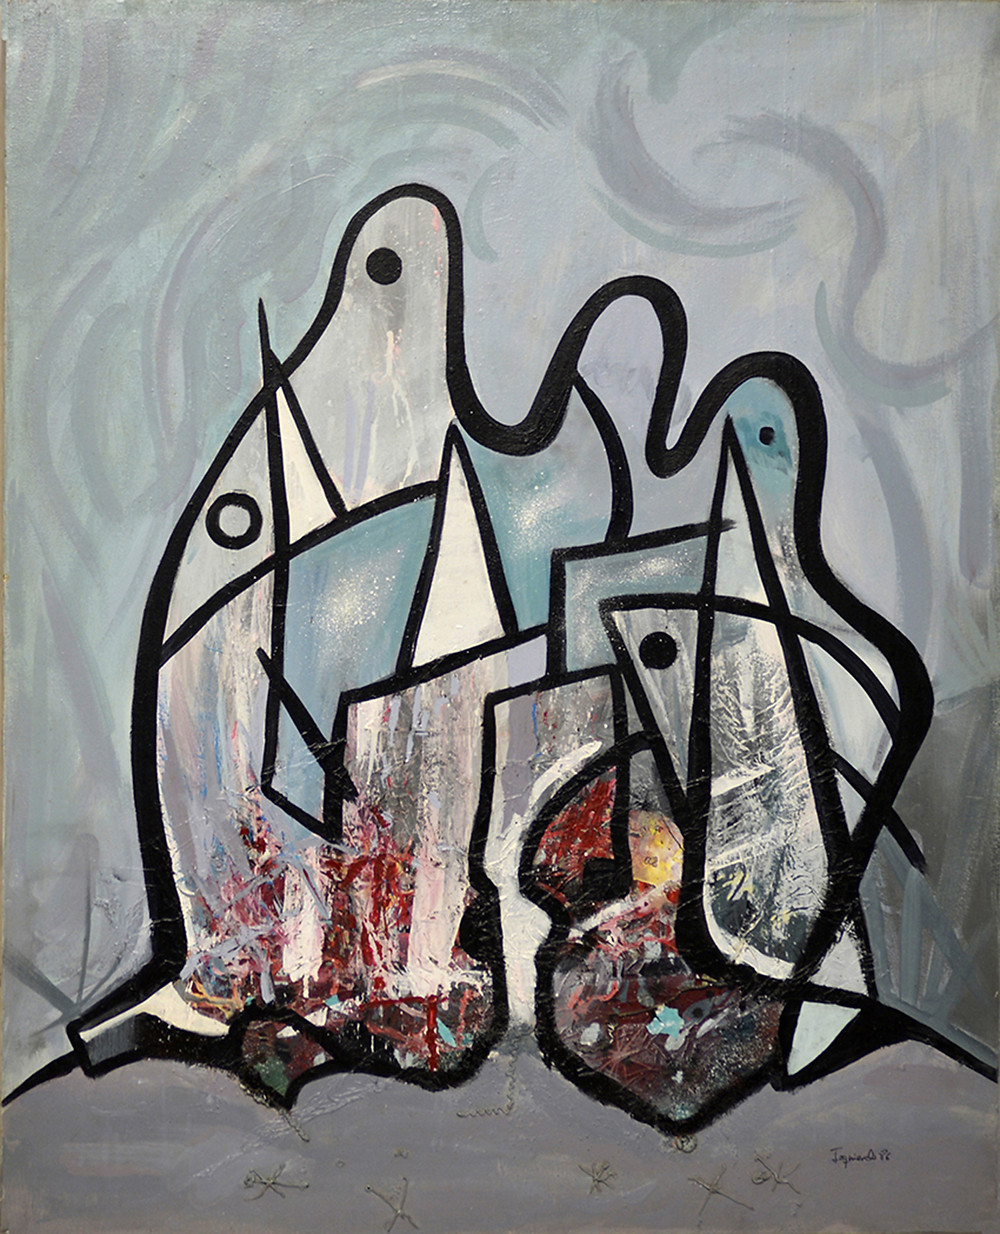 Abstract composition 120  ·        Technique: Acrylic on canvas.  ·        Dimensions: 100 x 81 cm  ·        Year: 1986